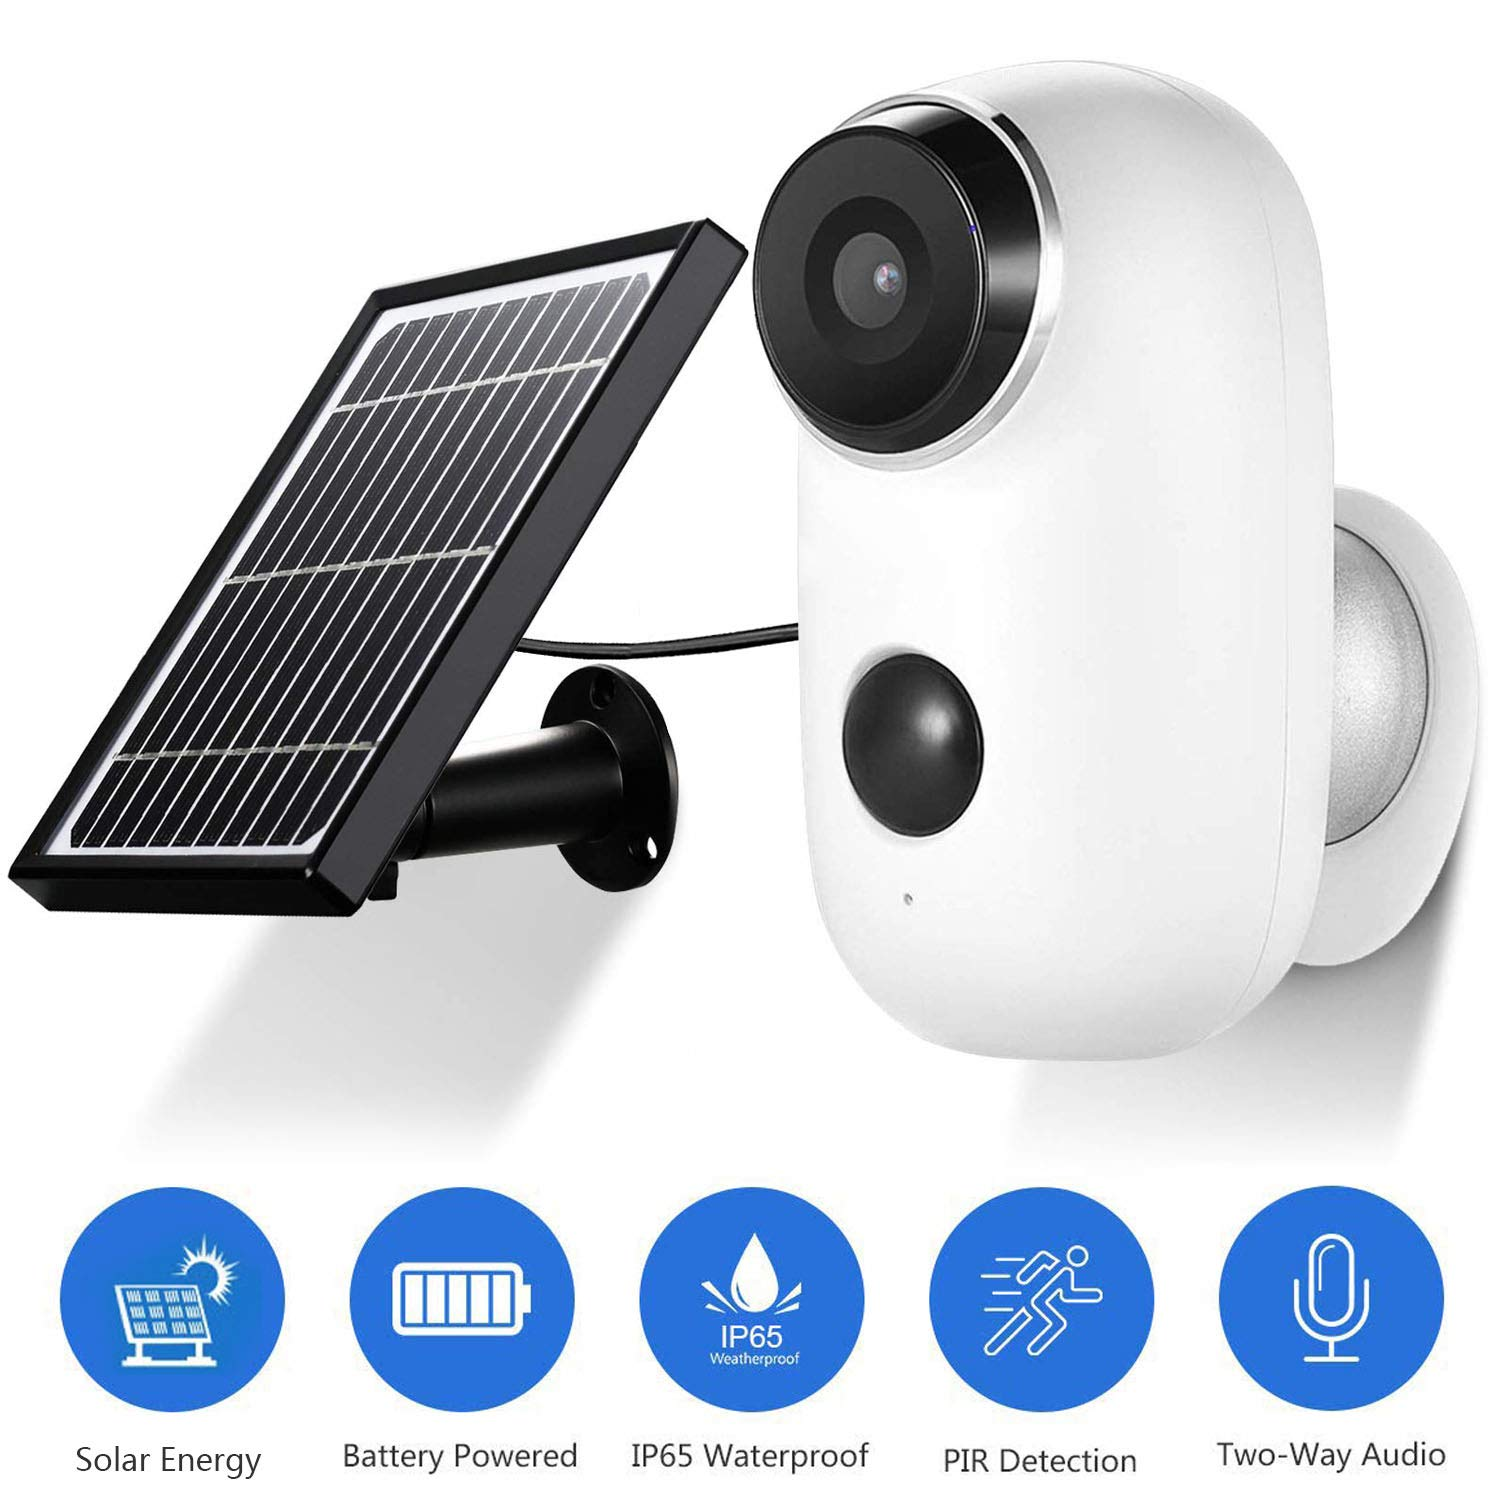 Wireless Solar Powered Security Camera 1080P Abowone Rechargeable Battery Powered Camera 2.0MP WiFi Camera Wire-Free Waterproof Indoor Outdoor Two-Way Audio PIR Sensor Body Detection HD Night Vision